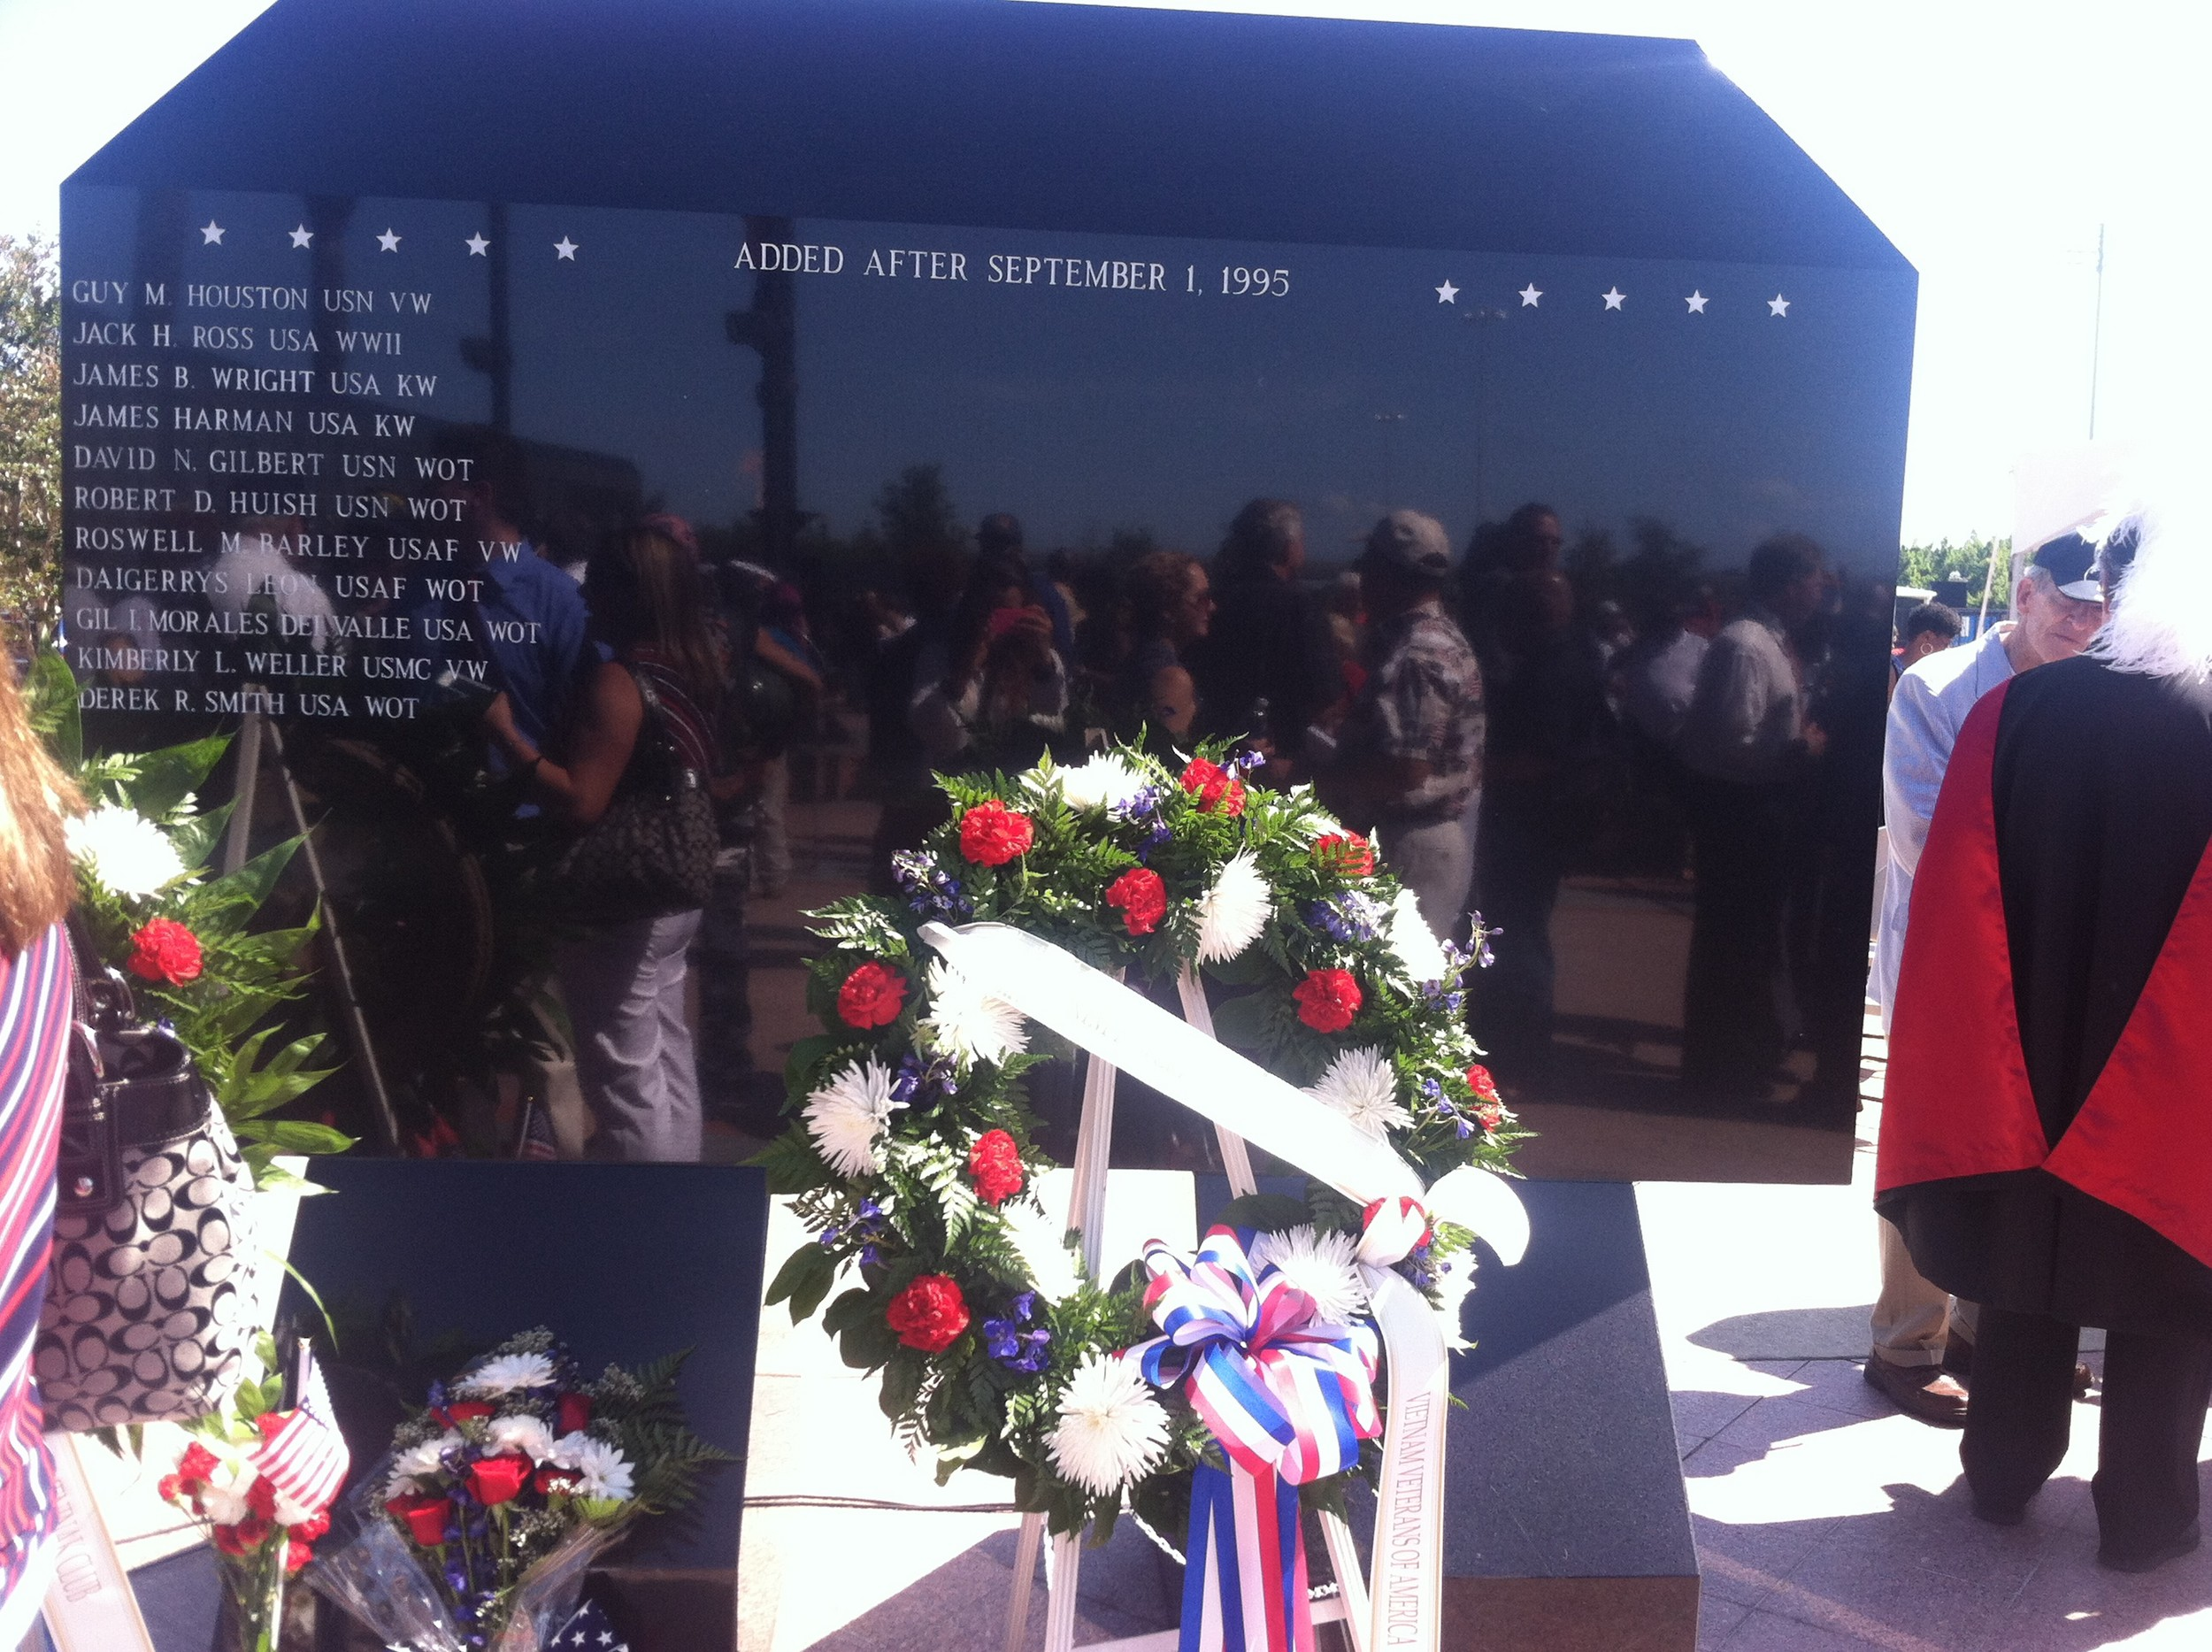 Two names were added to the wall honoring those who have died after September 1995.